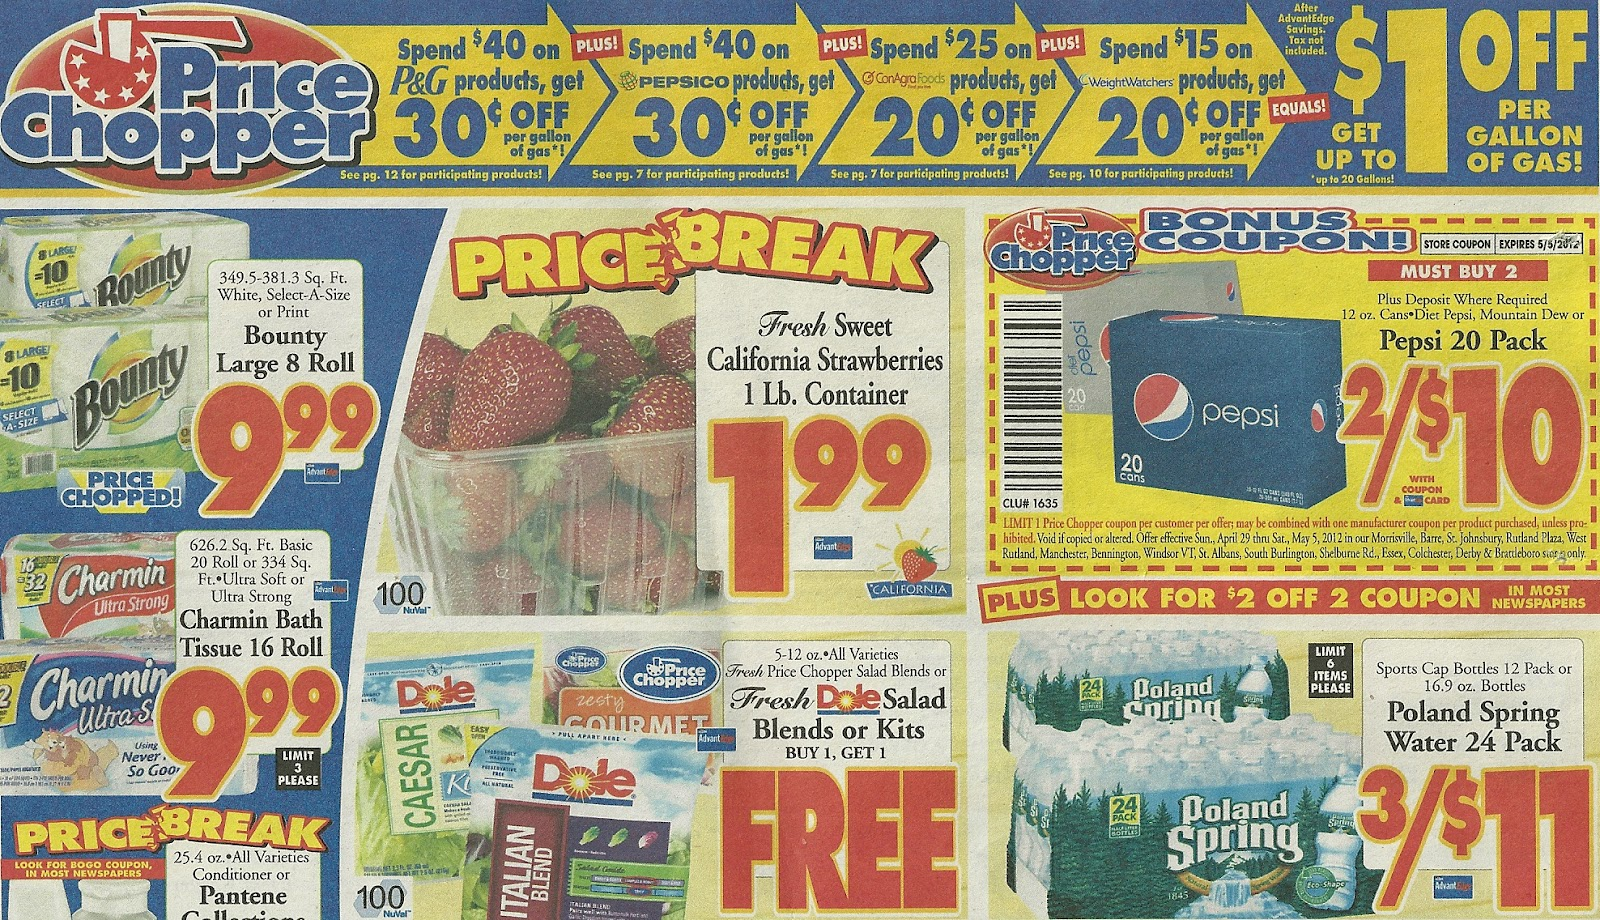 VTCouponer - Extreme Couponing in Vermont: Price Chopper Ad Scan/Preview 4/29 to 5/5